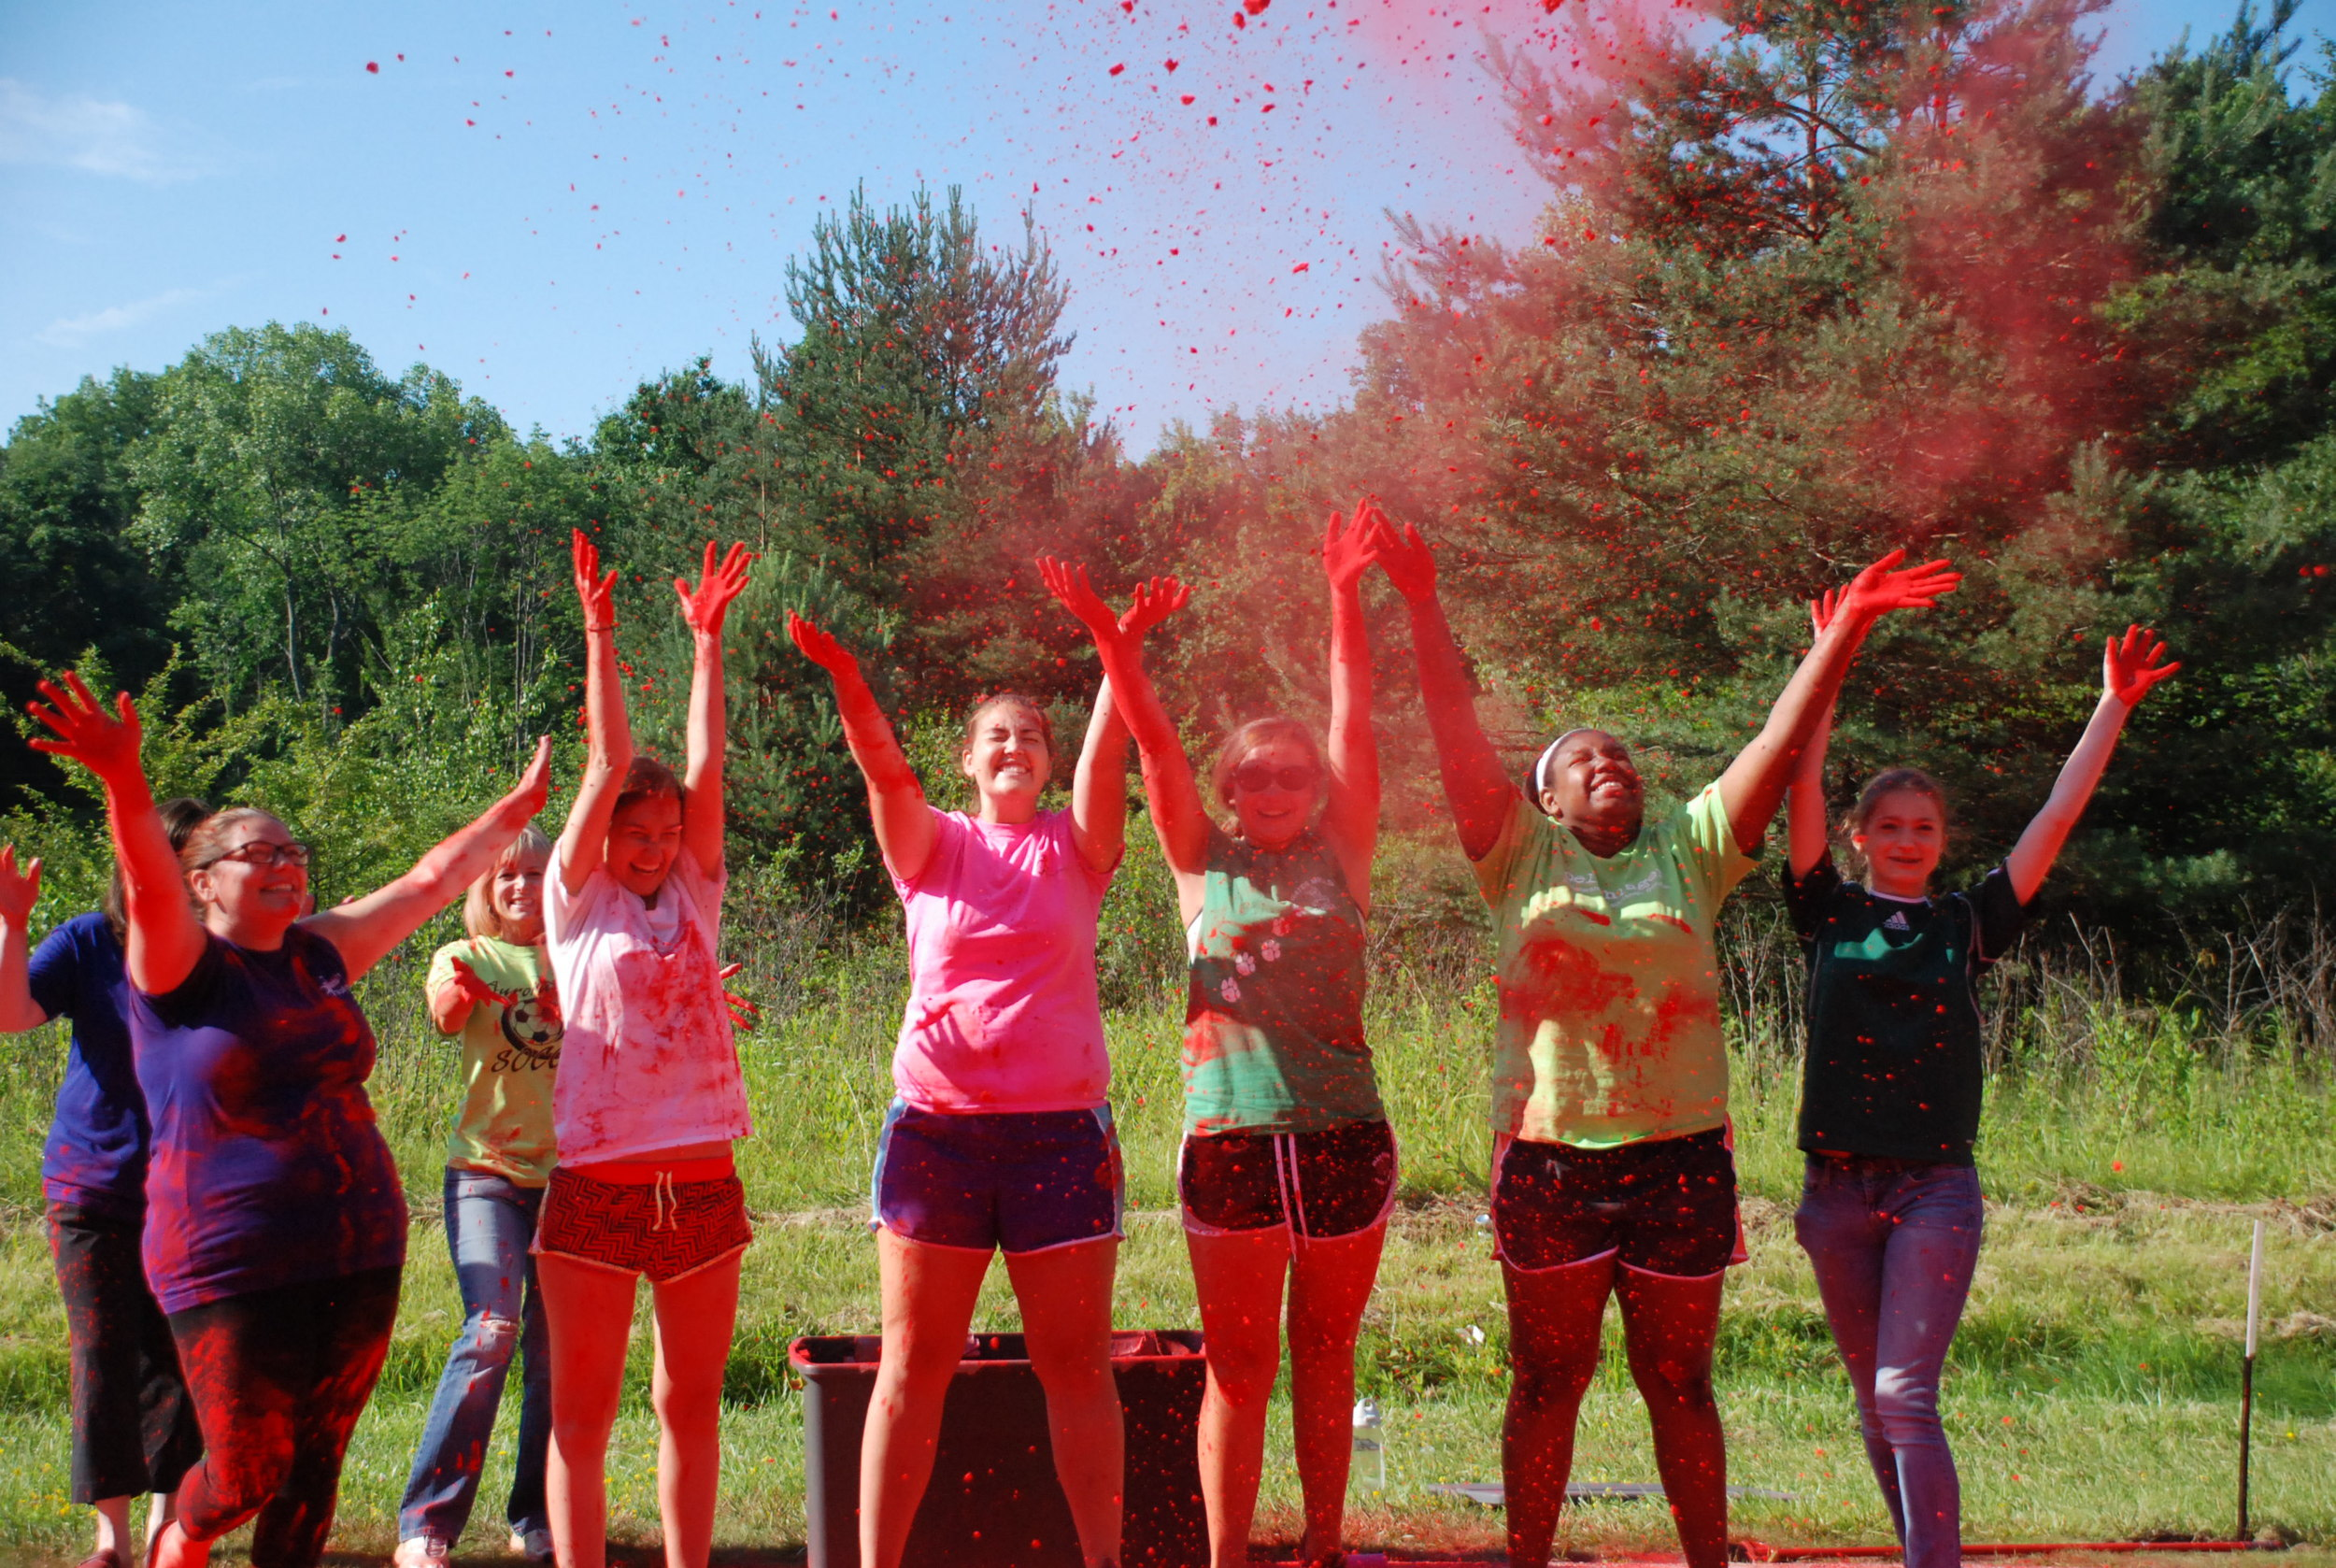 Our volunteers always have a great time! whether its color throwing (shown above), registration or being a water stop helper, they always have a smile on their face!